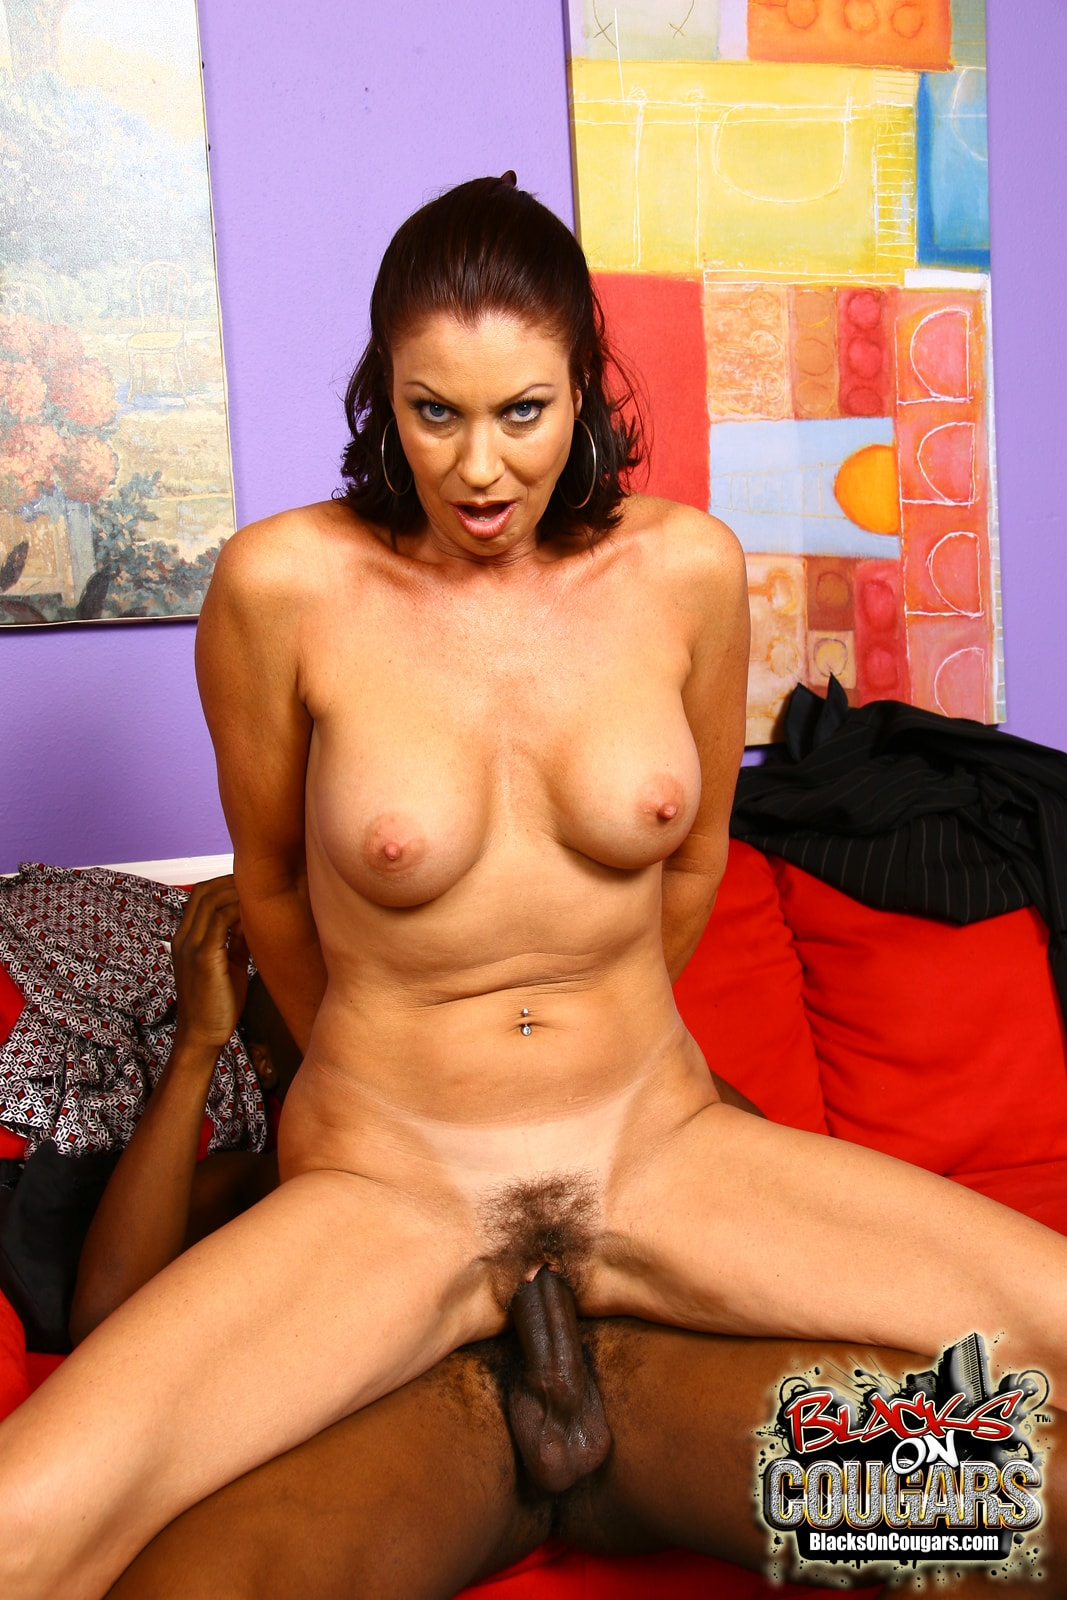 Dogfart '- Blacks On Cougars' starring Vanessa Videl (Photo 19)